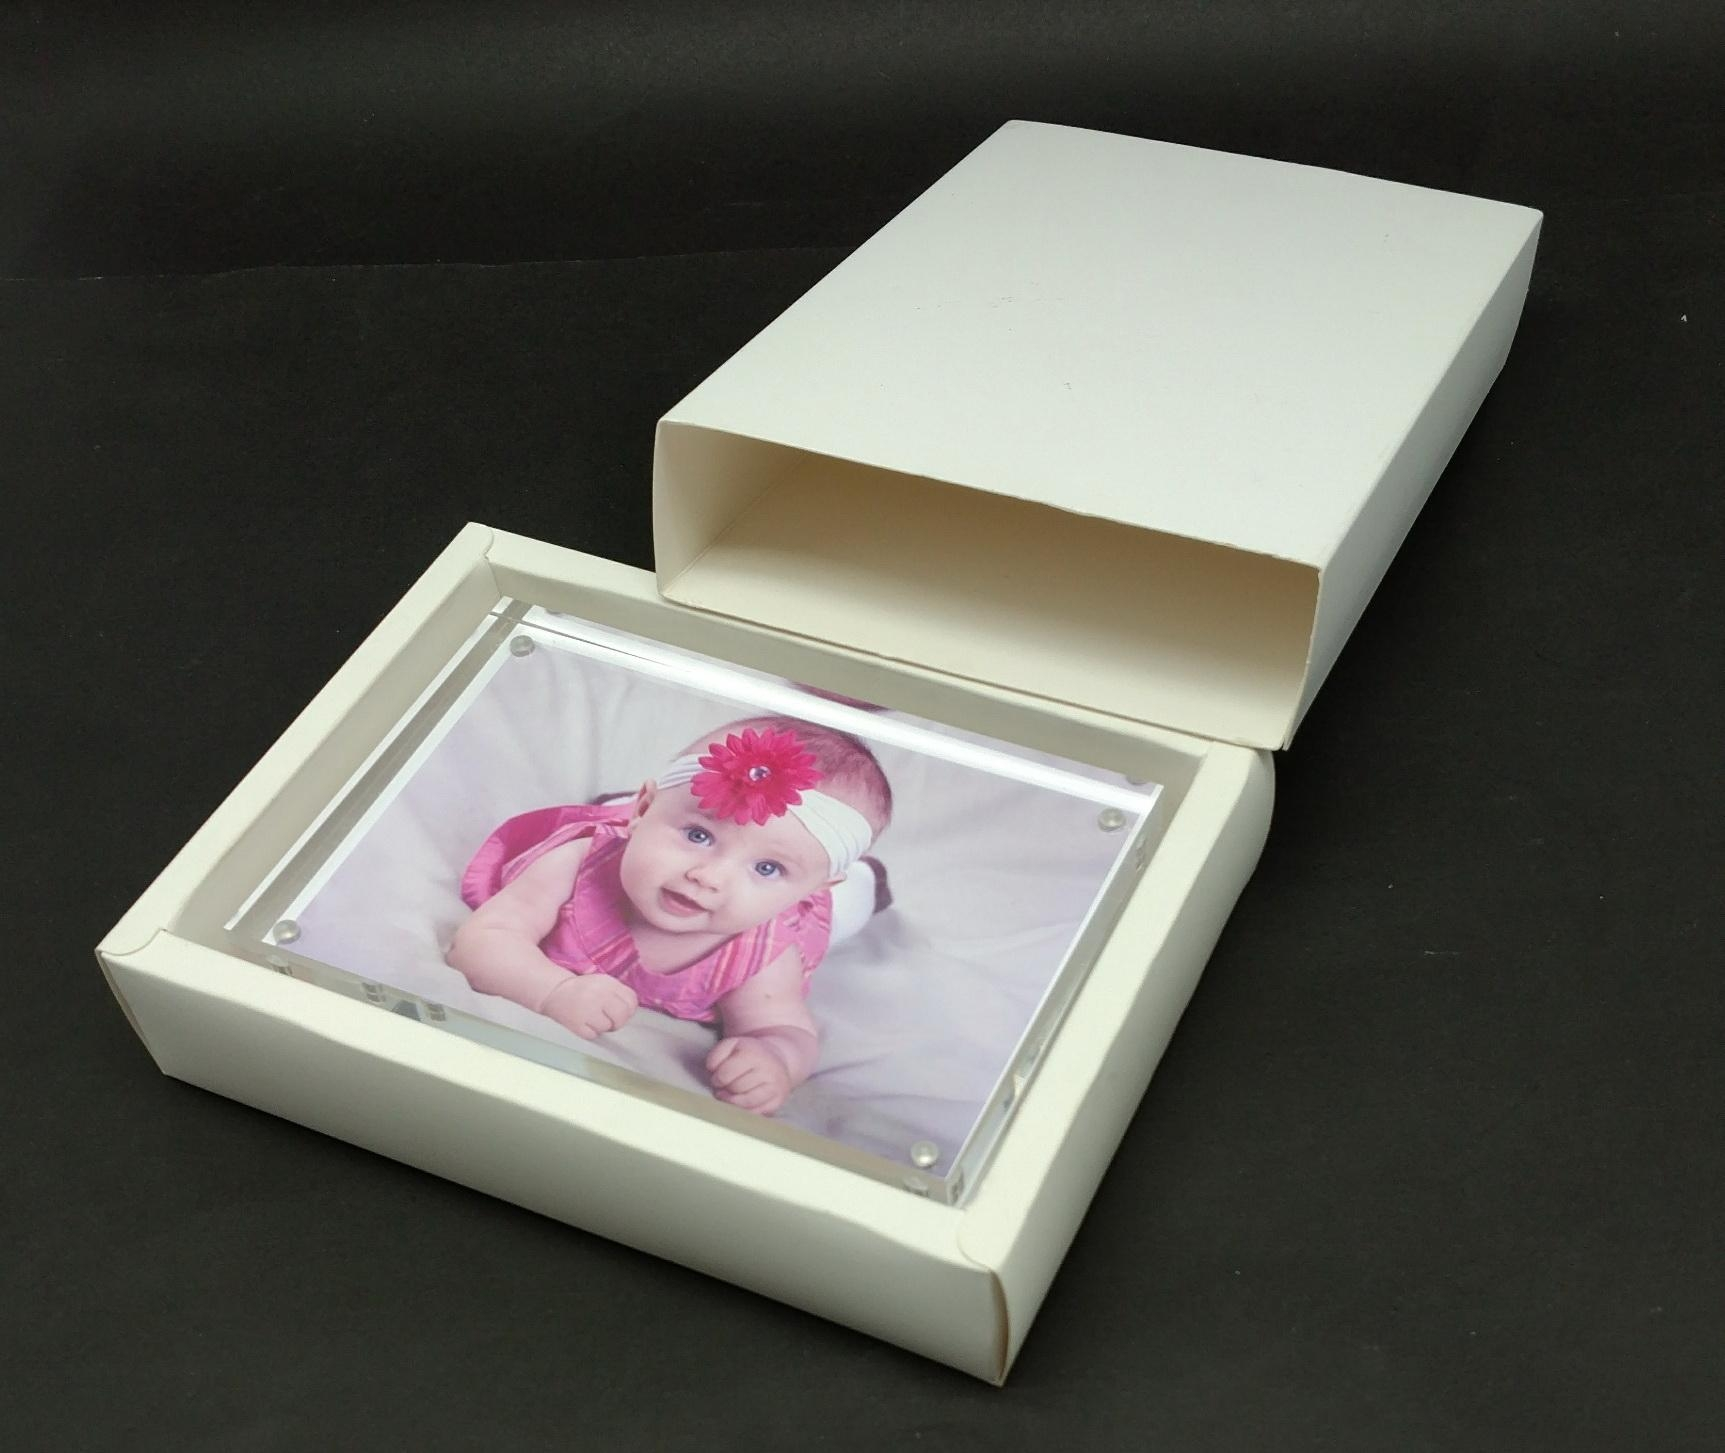 acrylic photo frame,2R,3R,4R,5R,8R photo frame